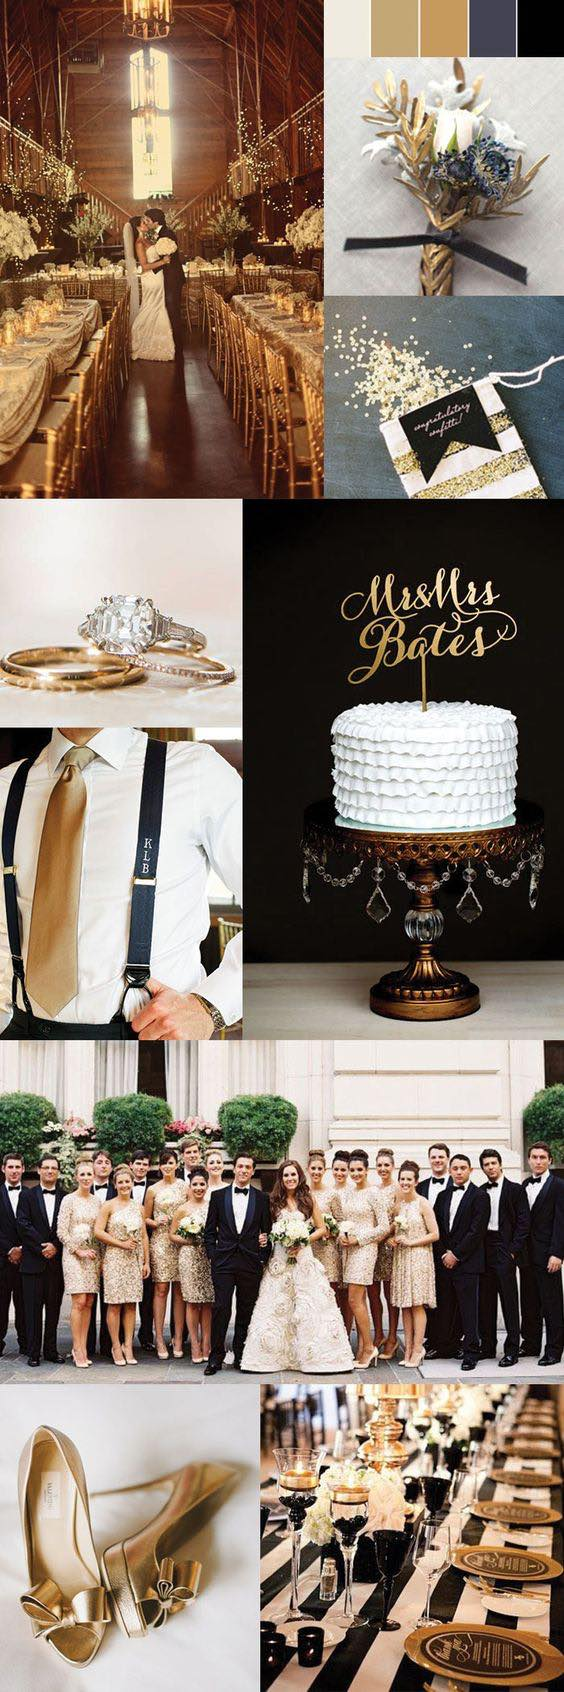 Black and gold wedding ideas. The choices are many, so there are no excuses to not surprise your guests with a dream wedding wrapped in gold. Check out these ideas!